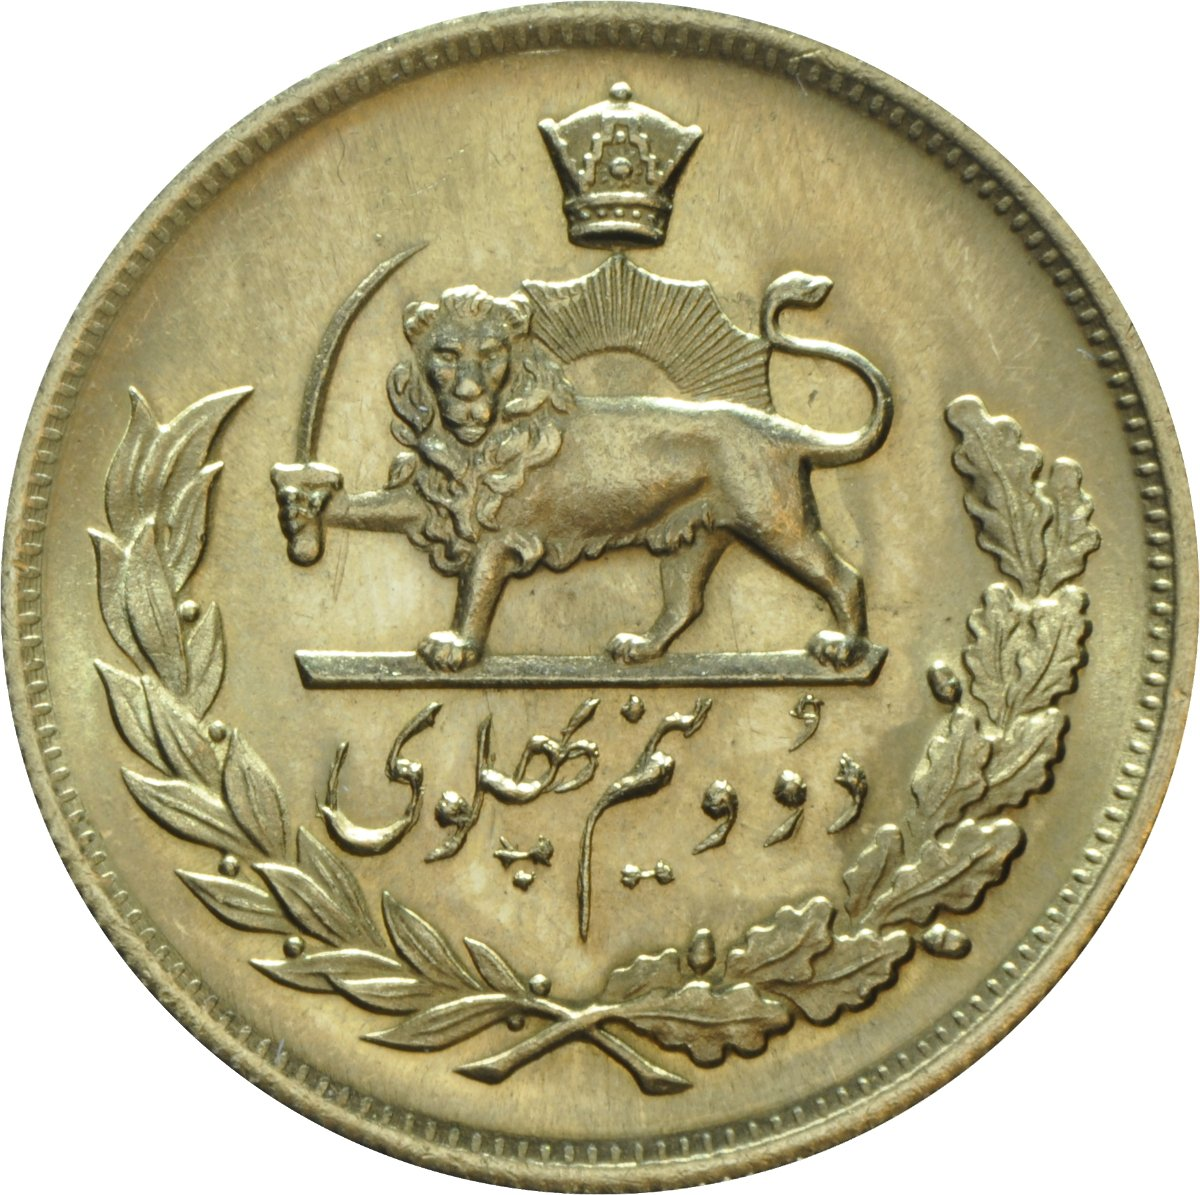 Buy 2 5 Pahlavi Gold Coin Bullionbypost From 163 766